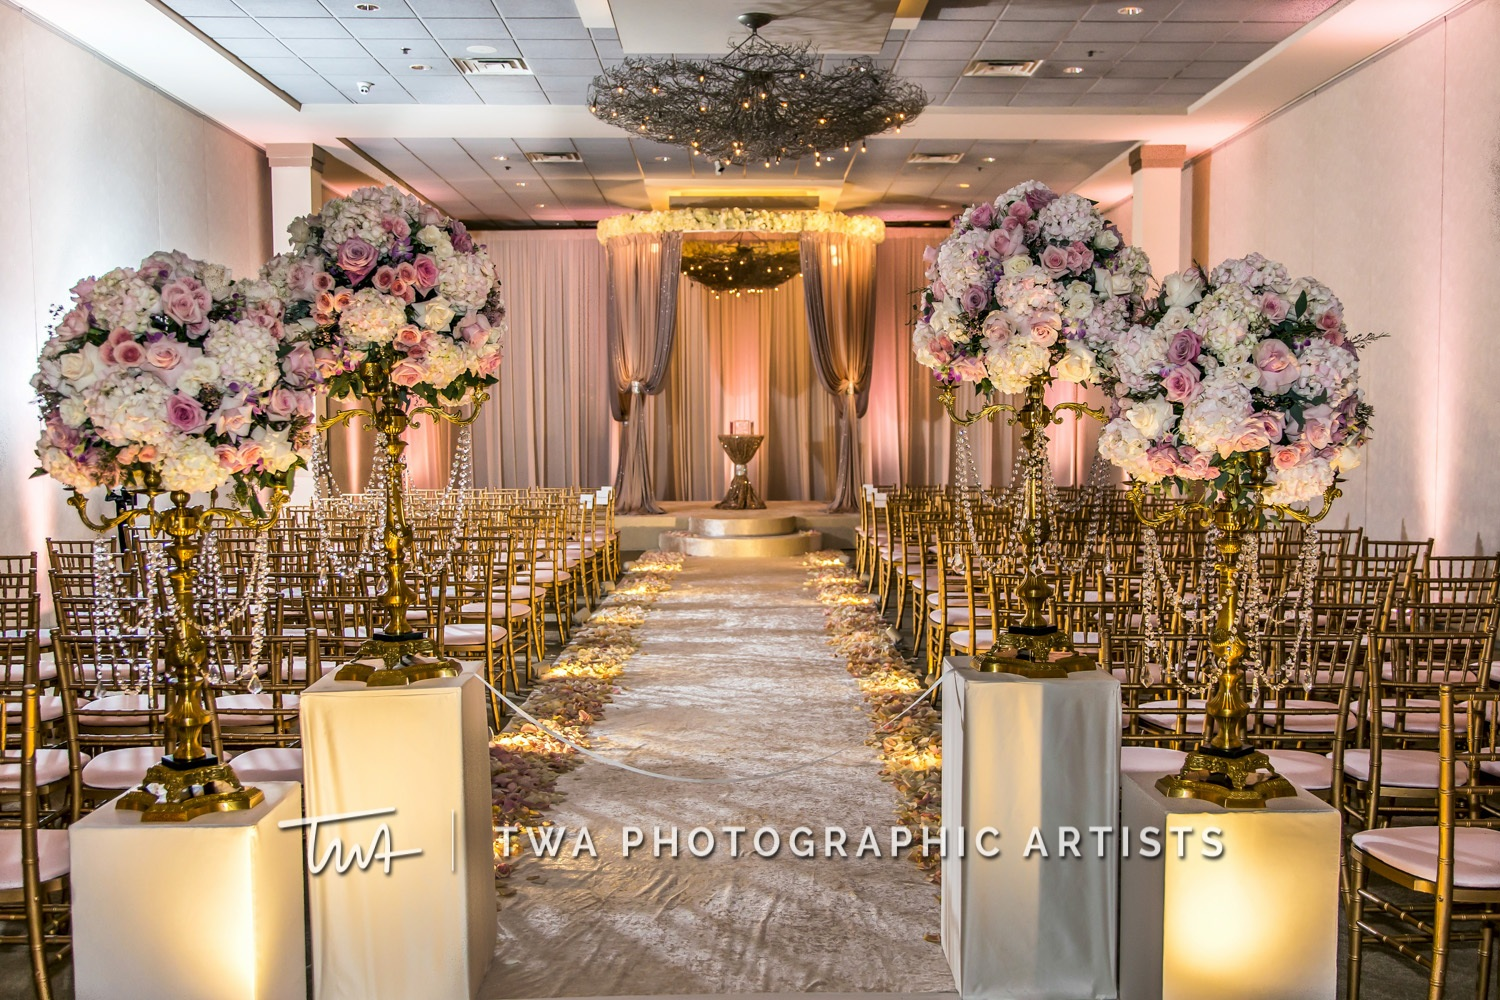 Chicago-Wedding-Photographer-TWA-Photographic-Artists-Belvedere-Banquets_Lavender_Chambers_SG-0233